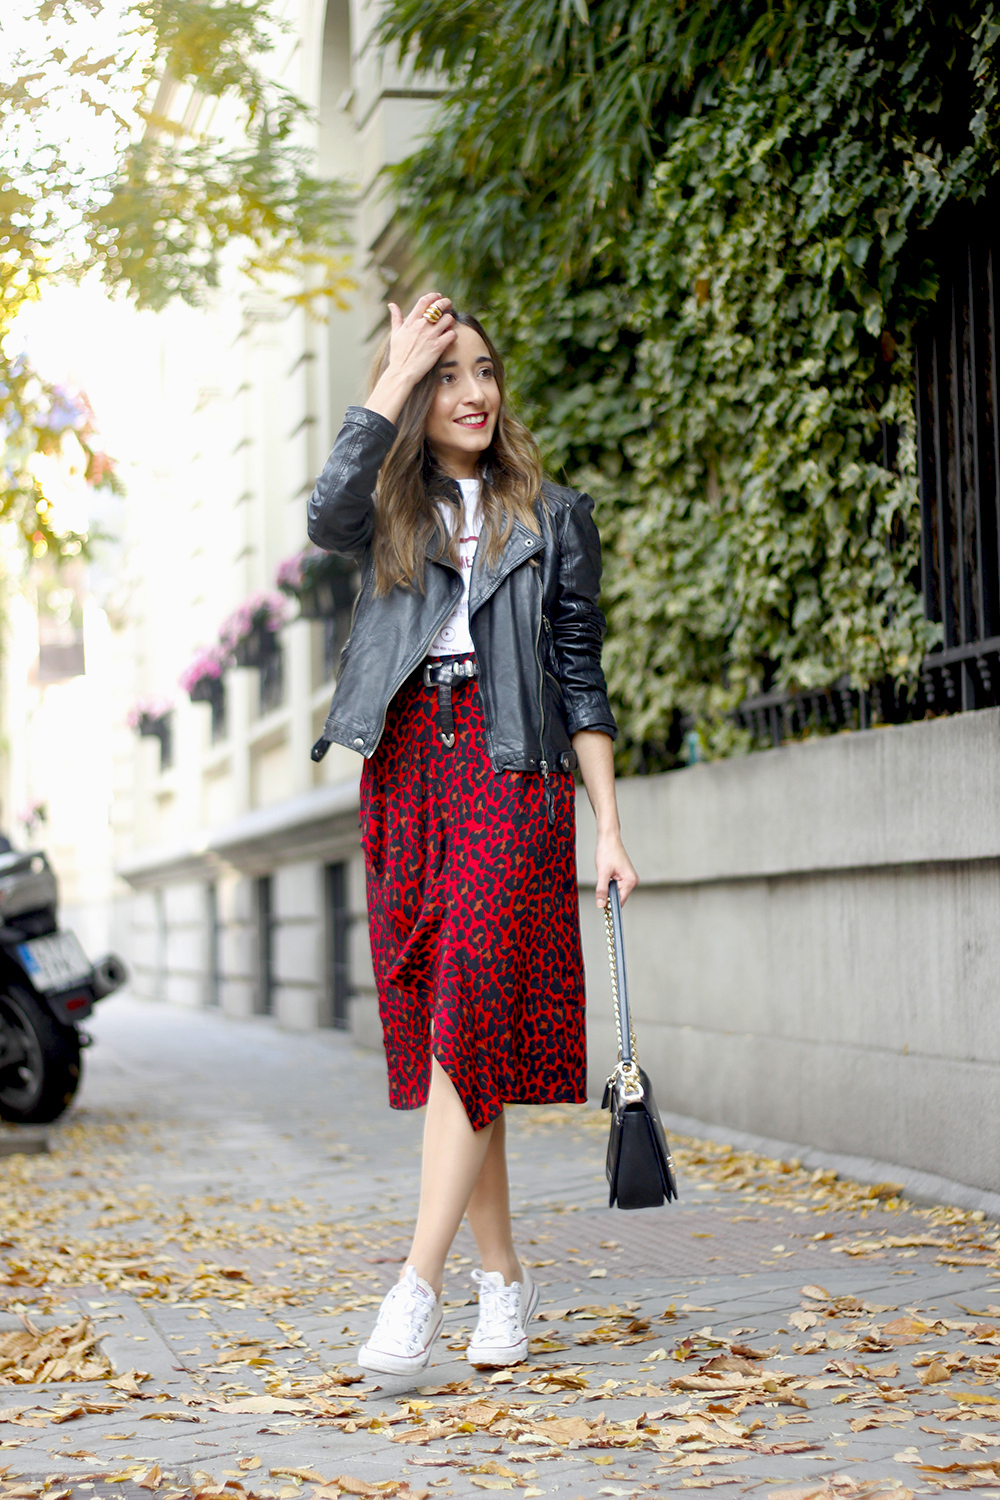 midi skirt red leopard print trend black biker jacket converse street style fall outfit 20186056